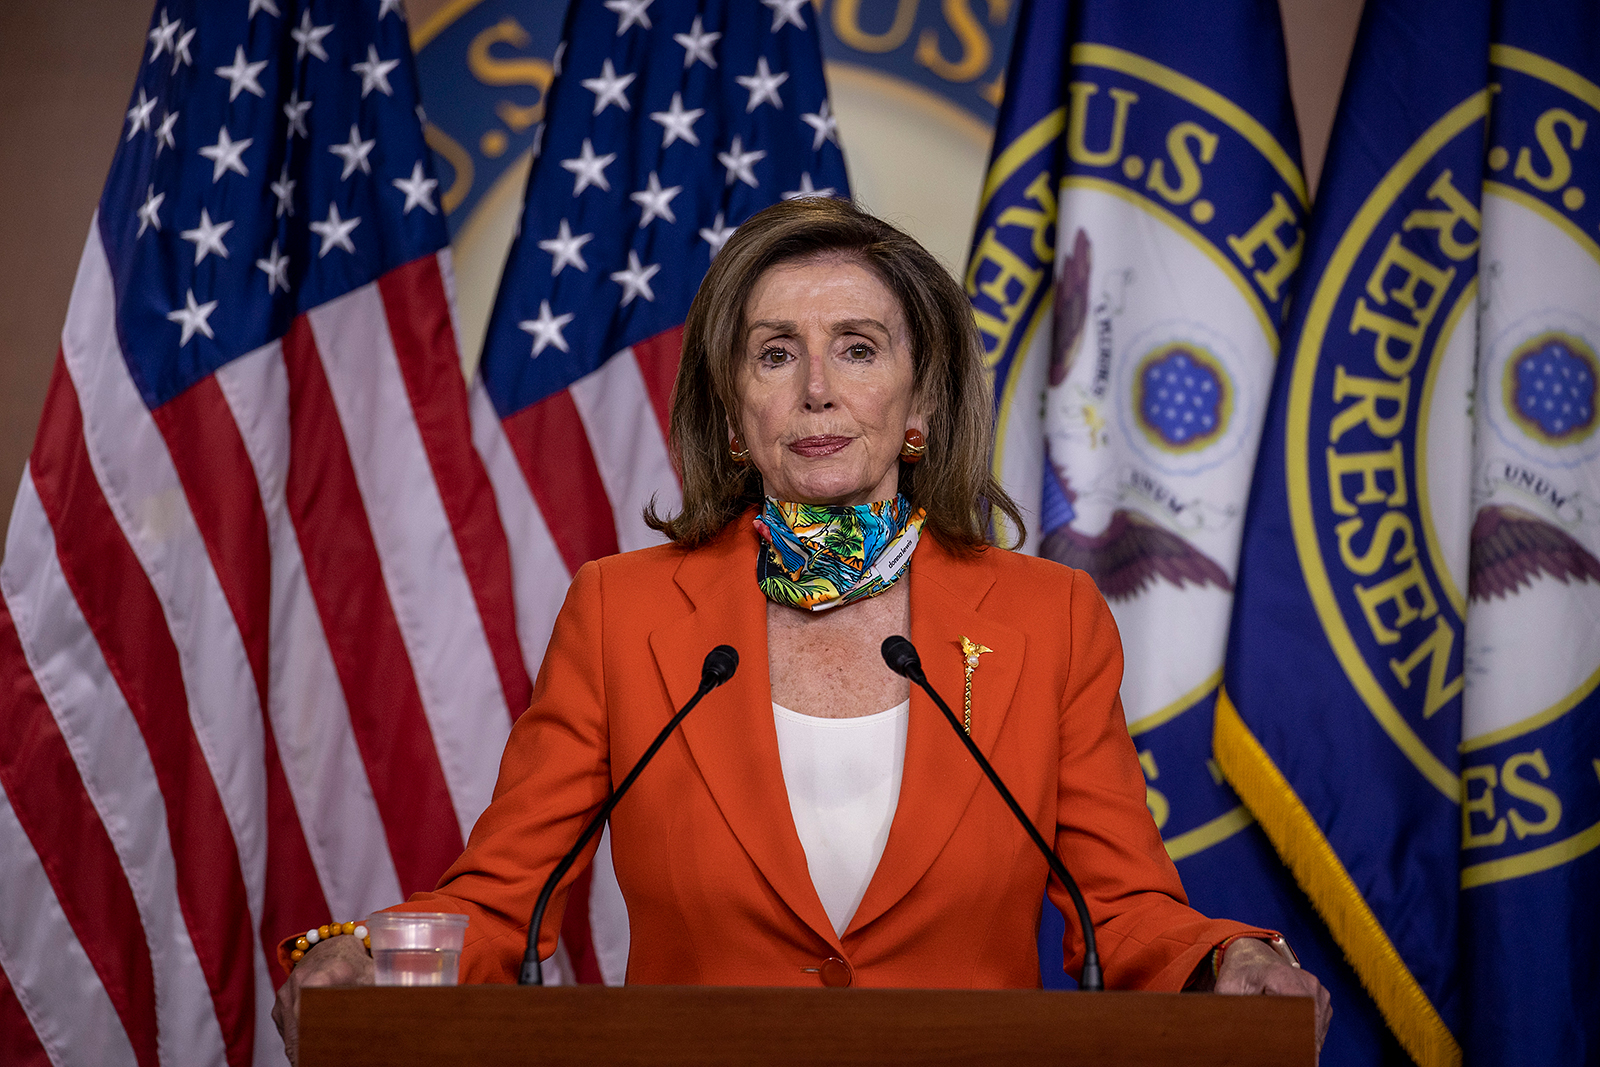 Speaker of the House Nancy Pelosi speaks at her weekly press conference on Capitol Hill in Washington, DC on June 26.